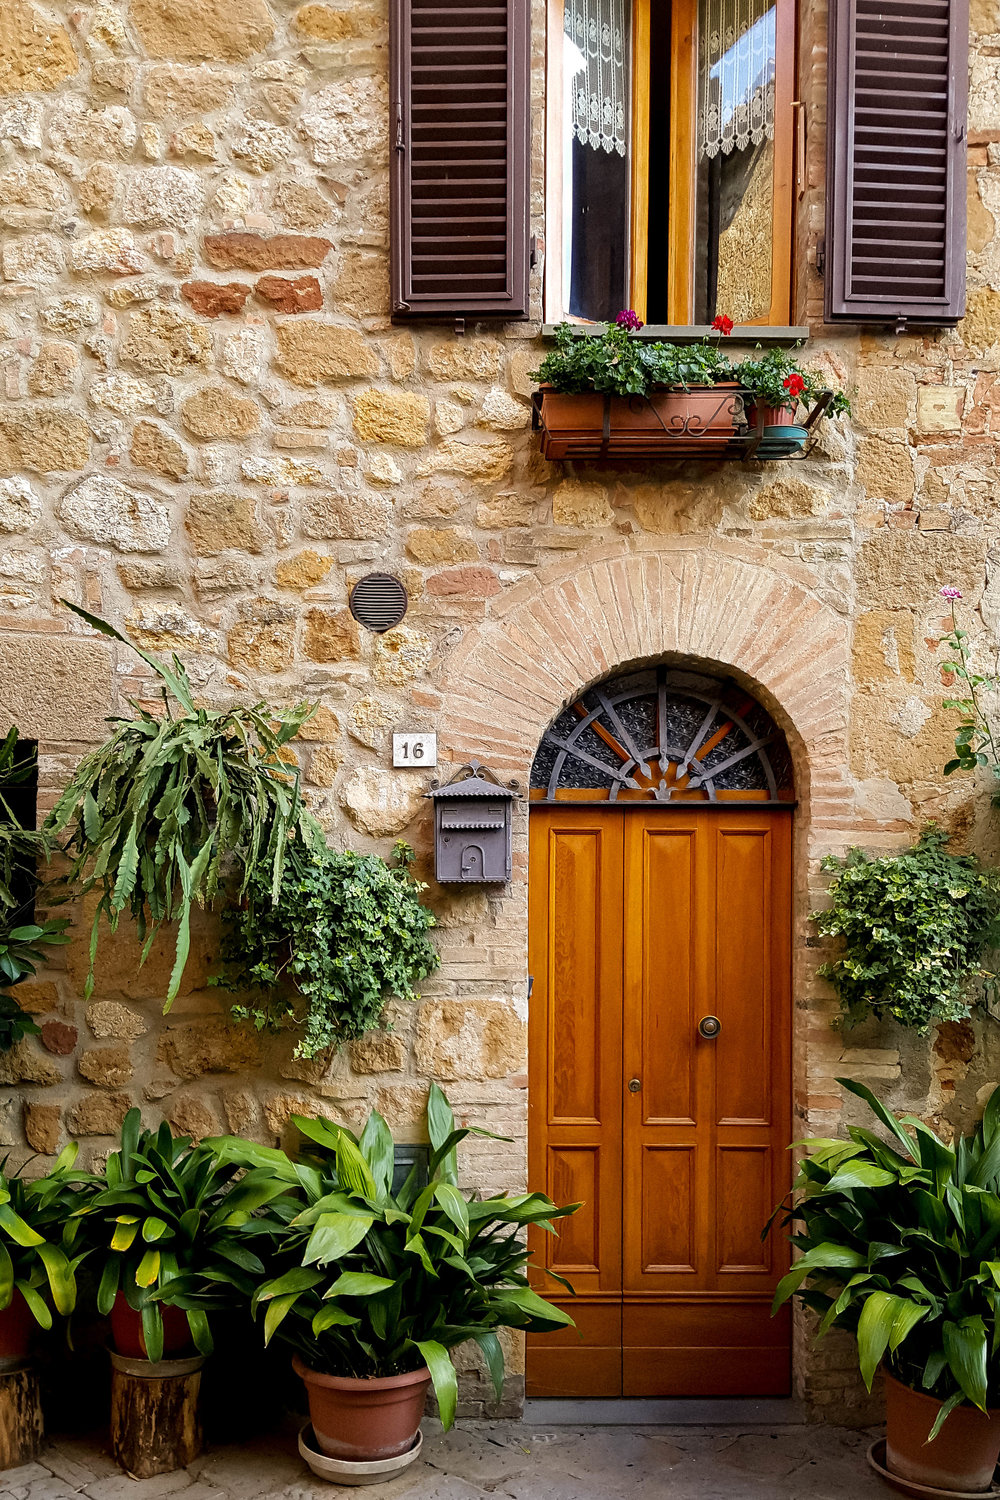 Doors of Pienza, Tuscany